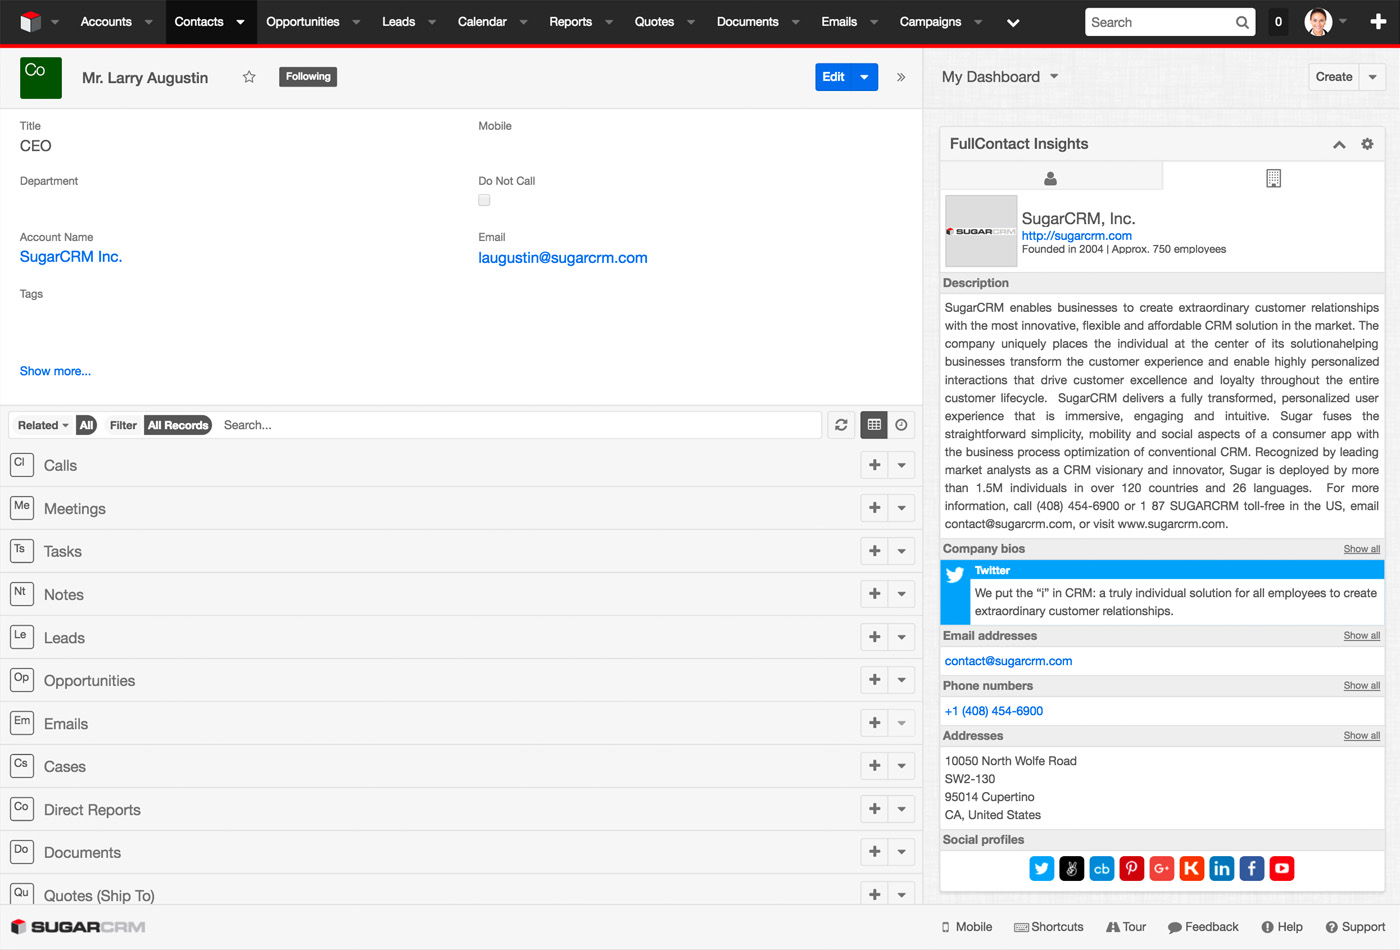 FullContact Insights for SugarCRM - Company View